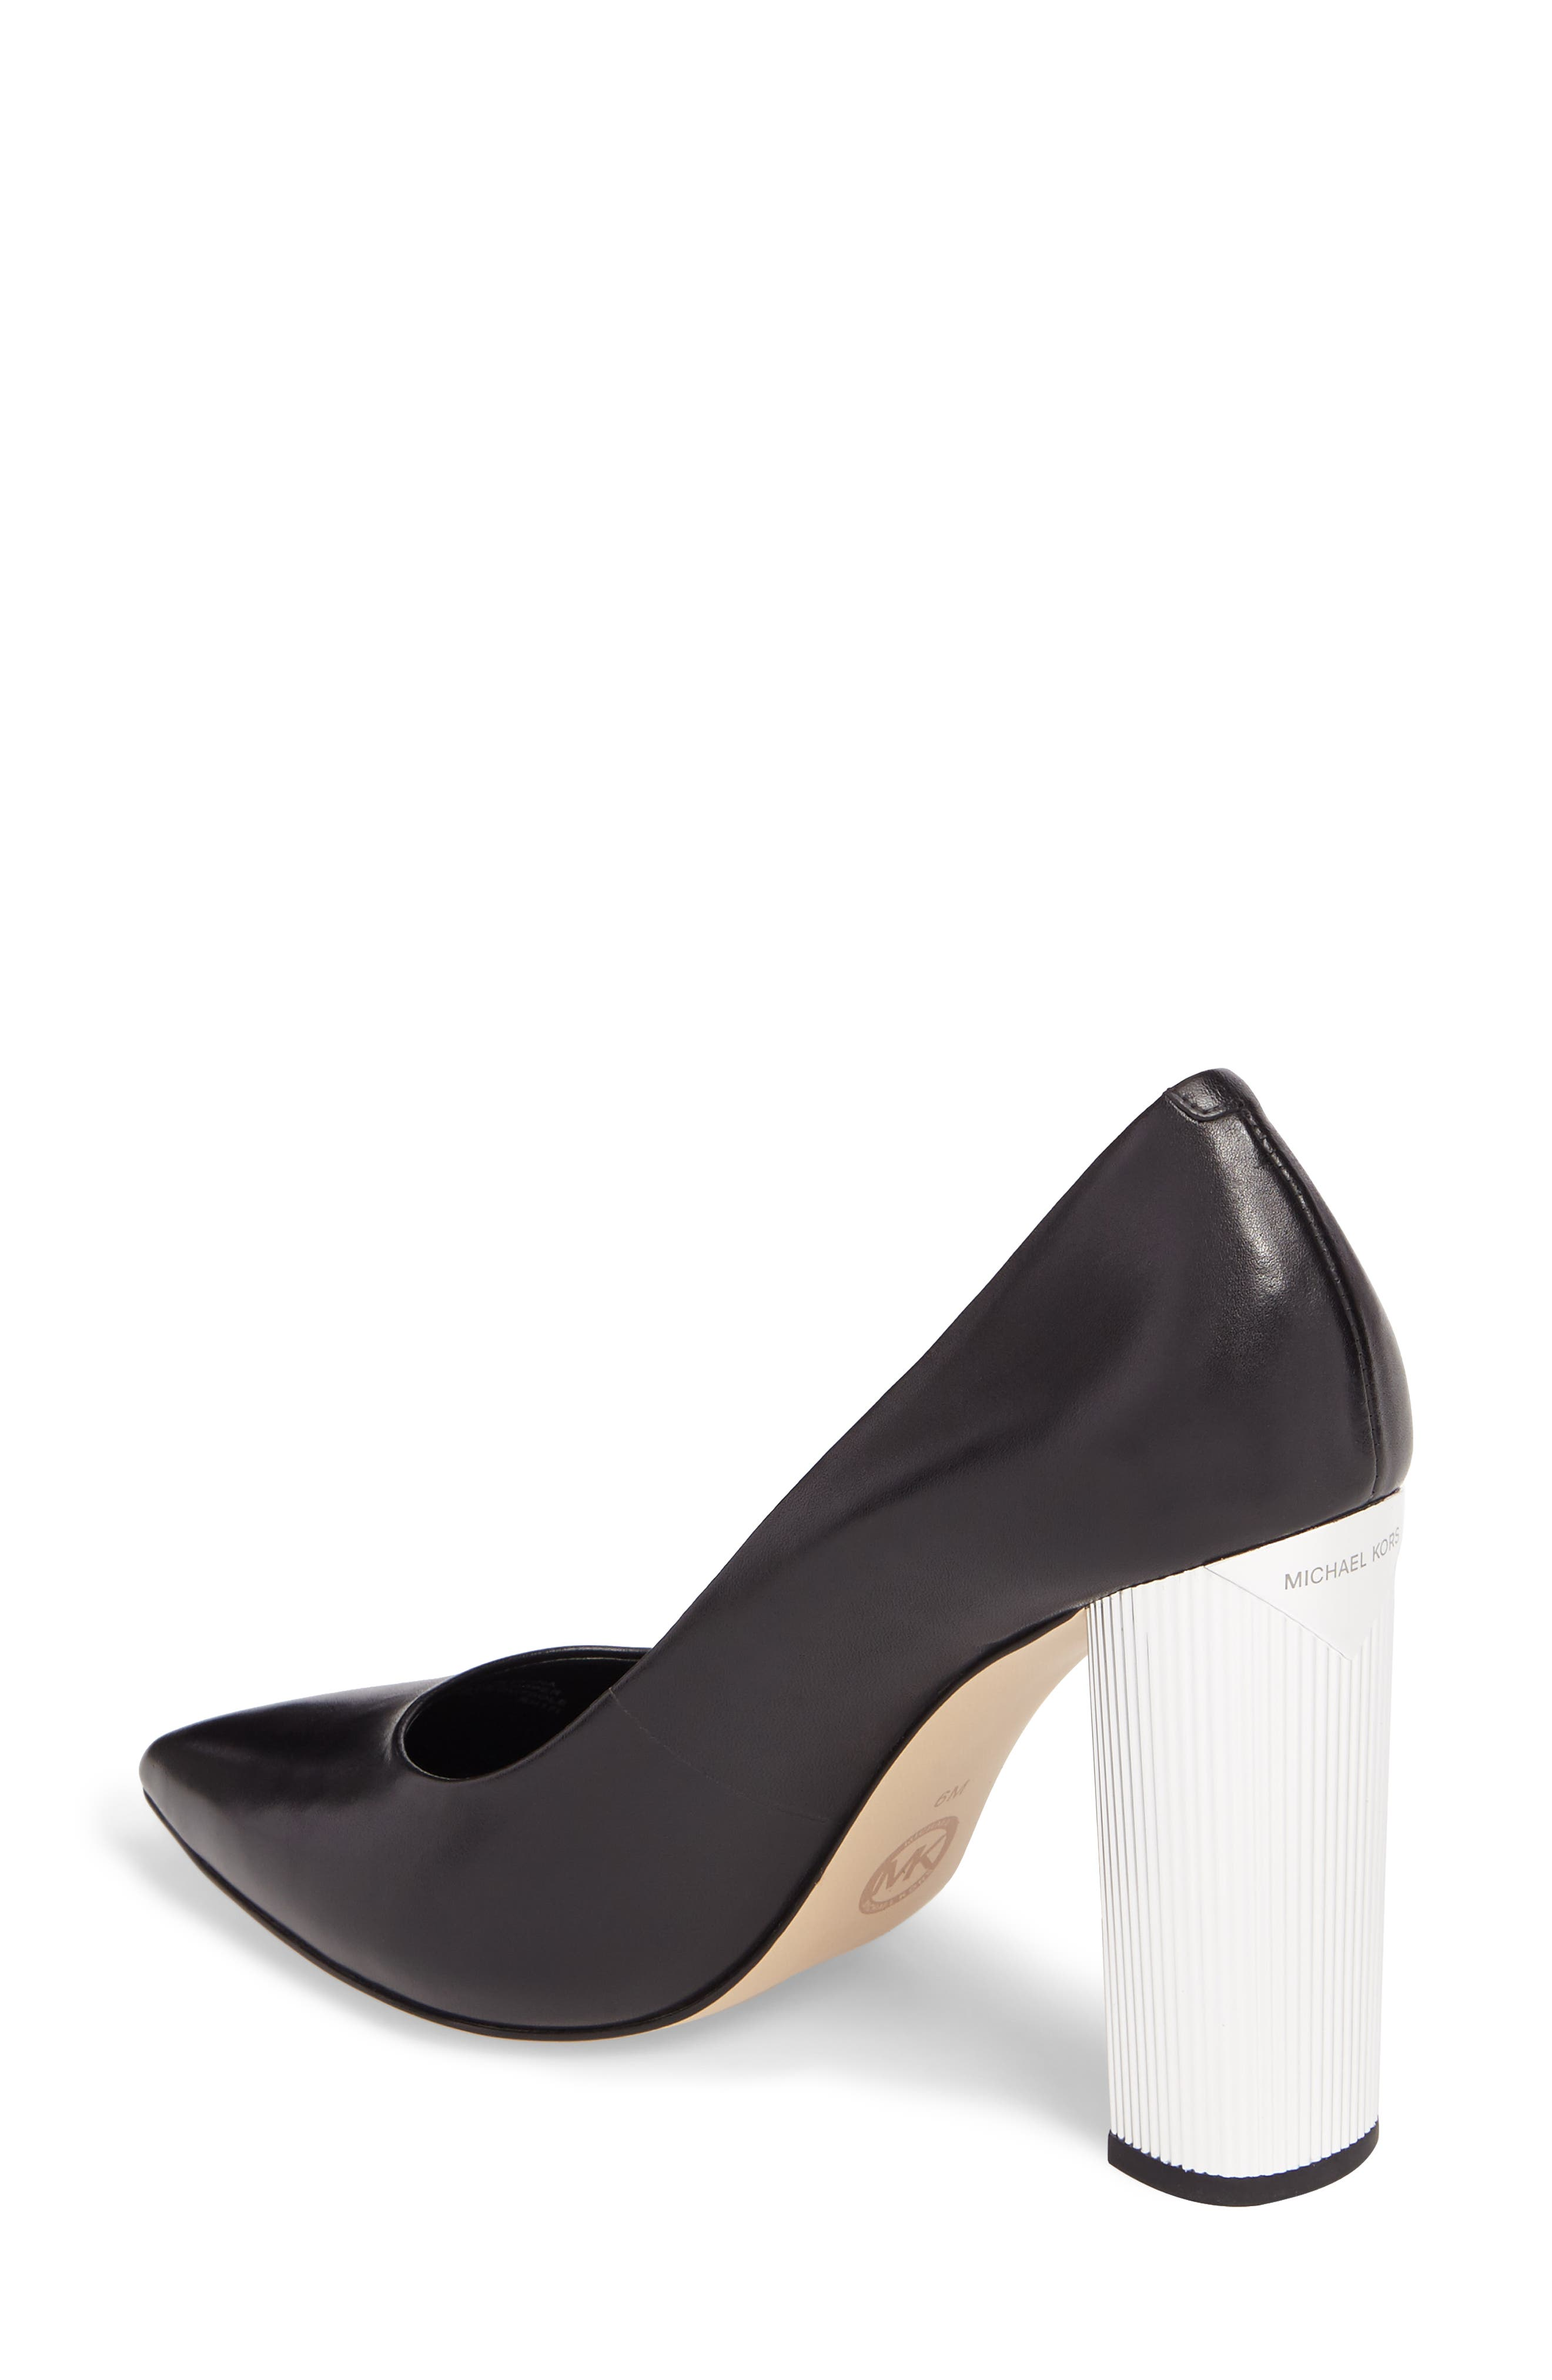 Paloma Metallic Heel Pump,                             Alternate thumbnail 2, color,                             001